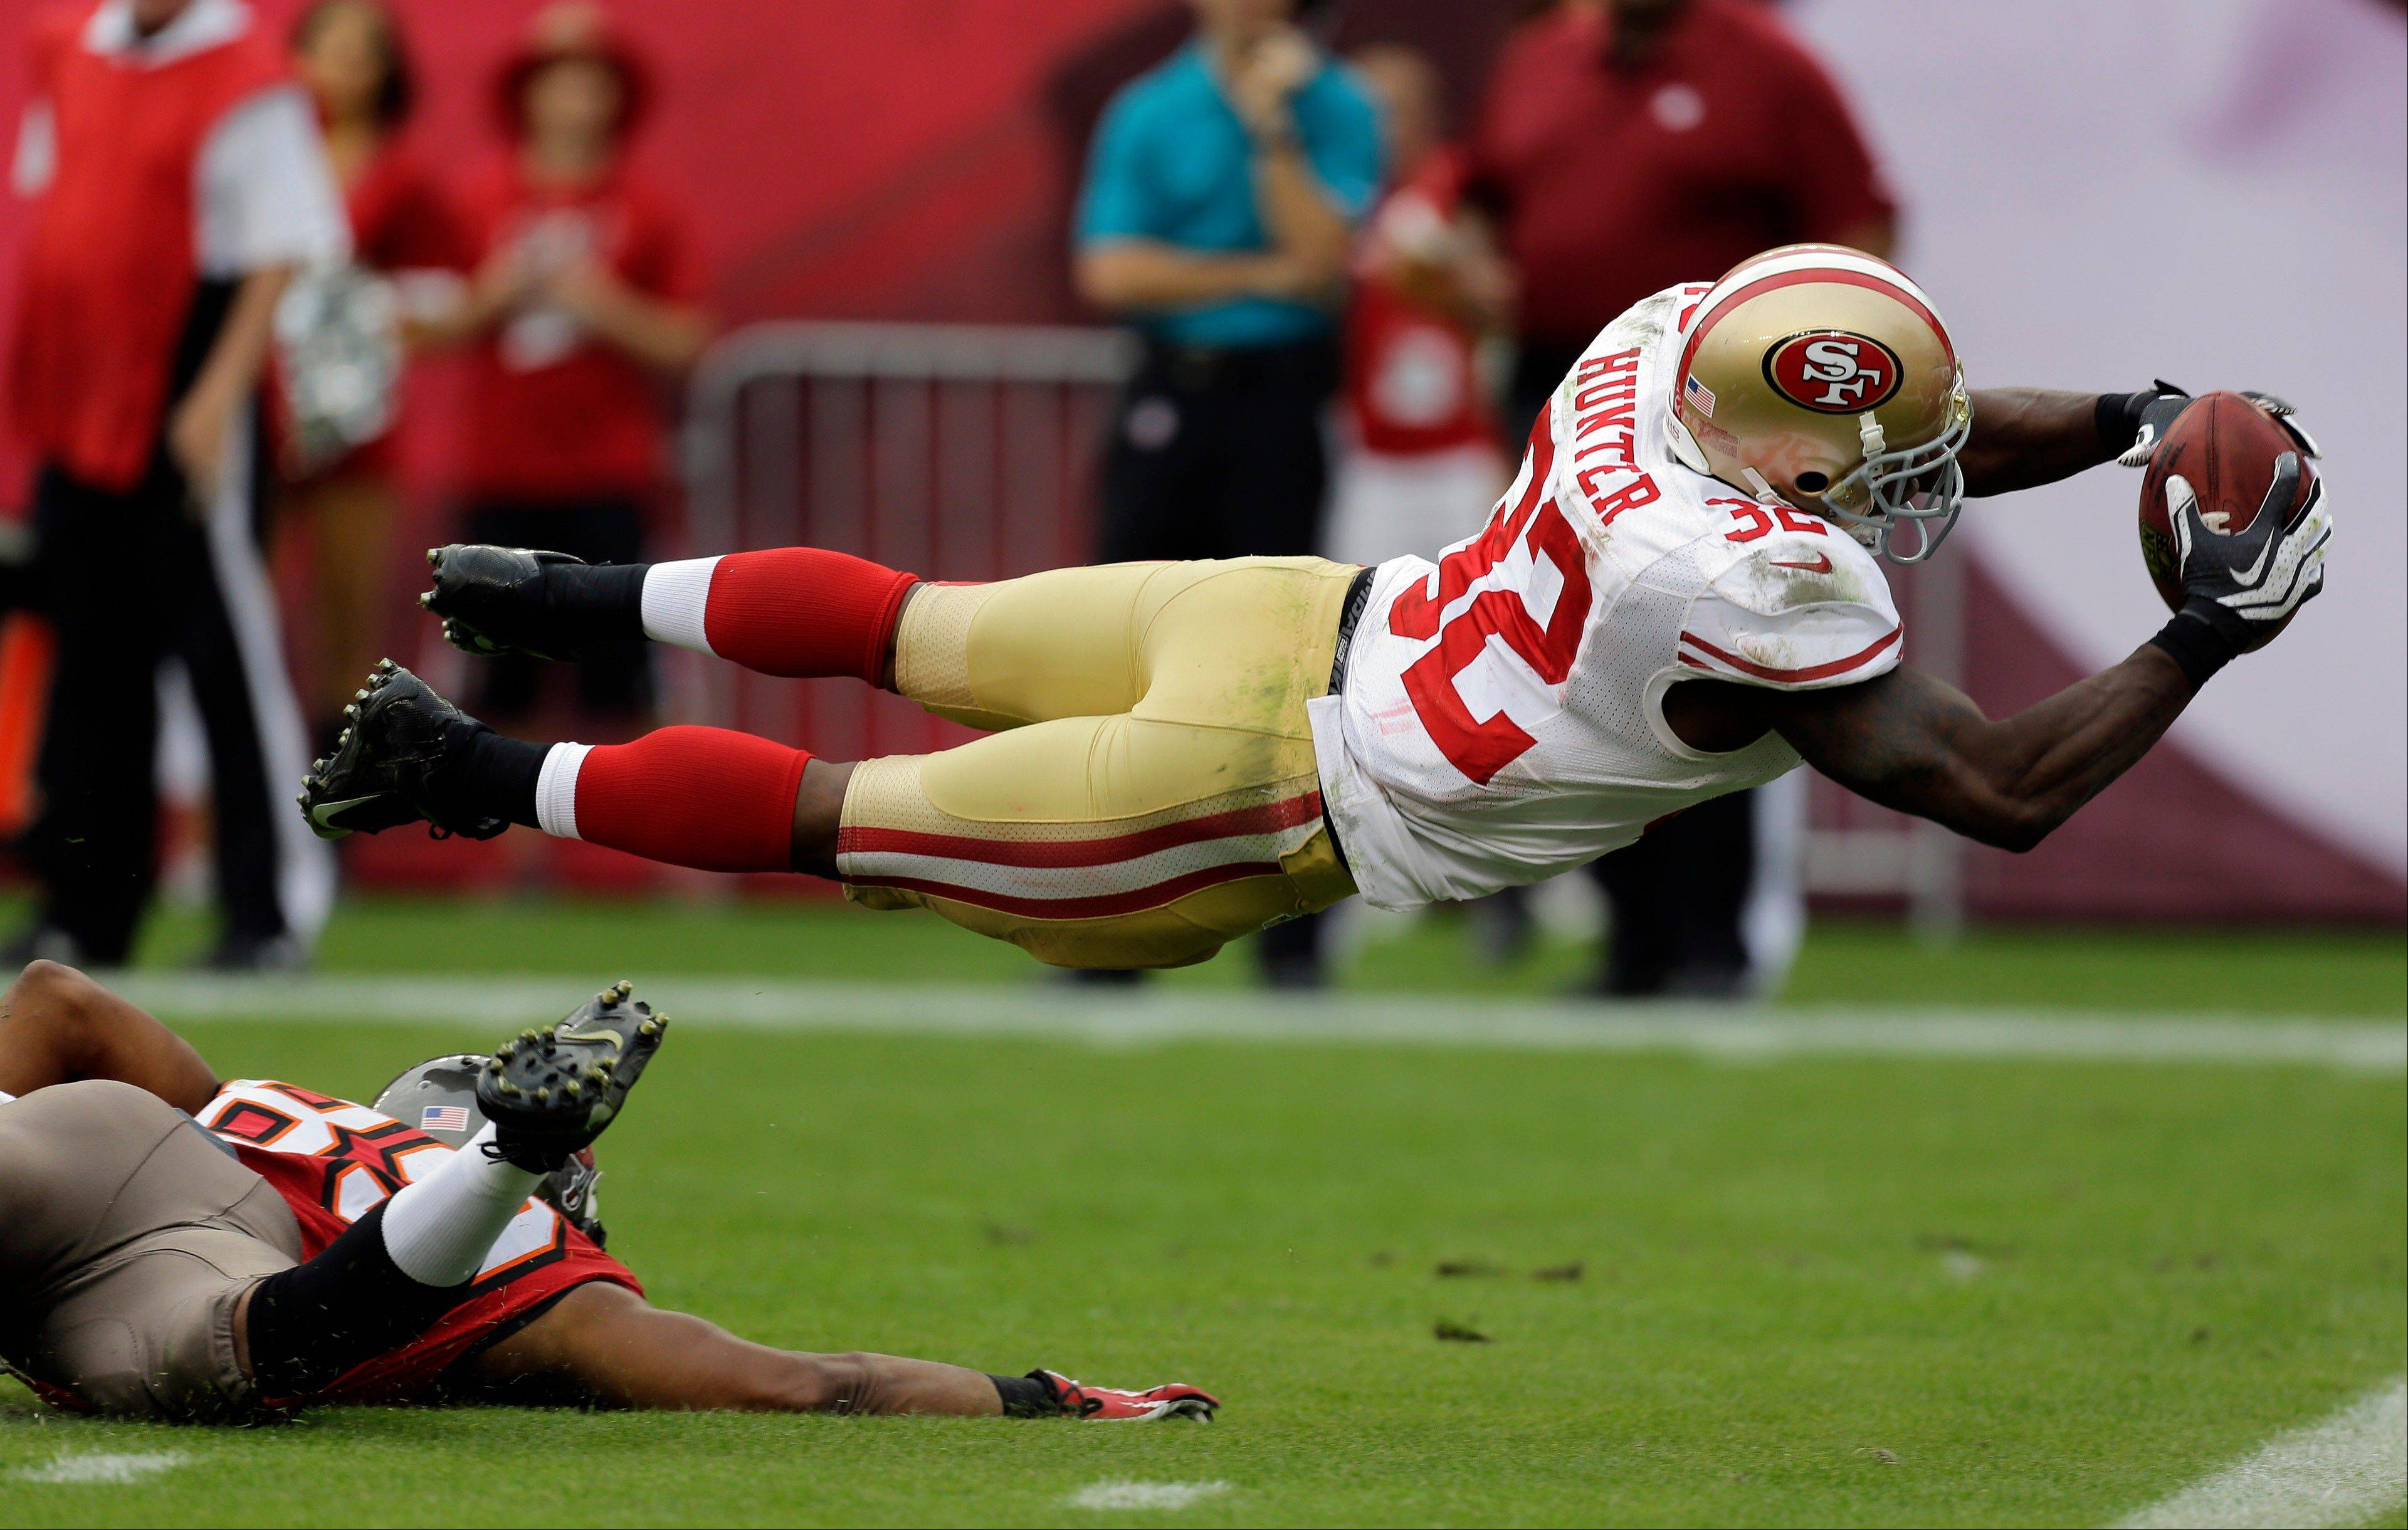 San Francisco 49ers� Kendall Hunter (32) dives into the end zone to score after picking up a fumble by Tampa Bay Buccaneers� Russell Shepard during the fourth quarter of an NFL football game Sunday, Dec. 15, 2013, in Tampa, Fla.